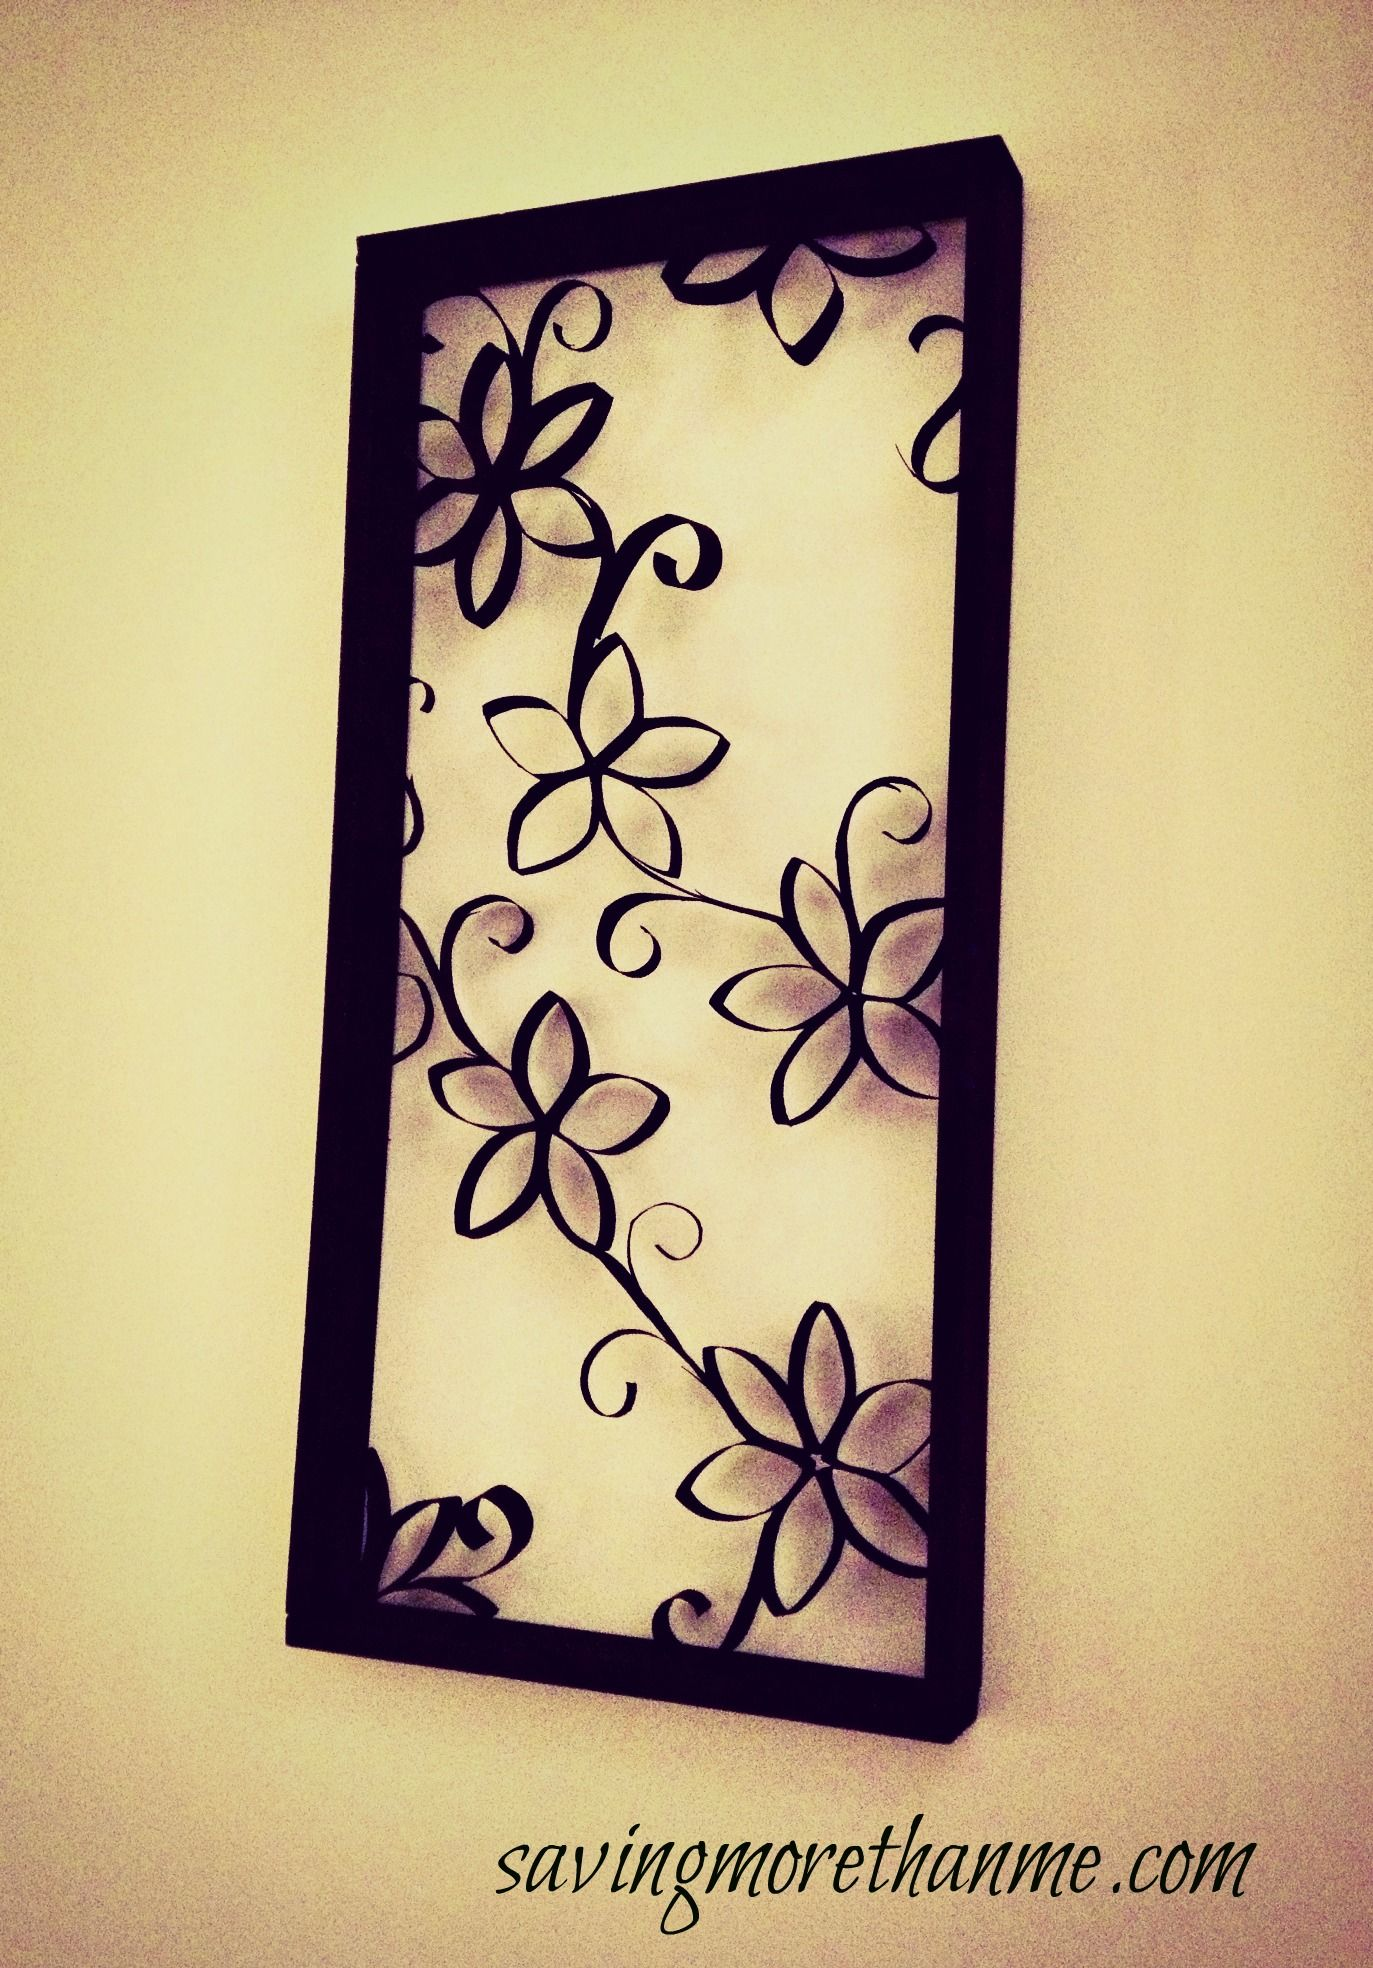 DIY Wall Decor made from... (You\'ll Never Guess!) | Pinterest | Wall ...